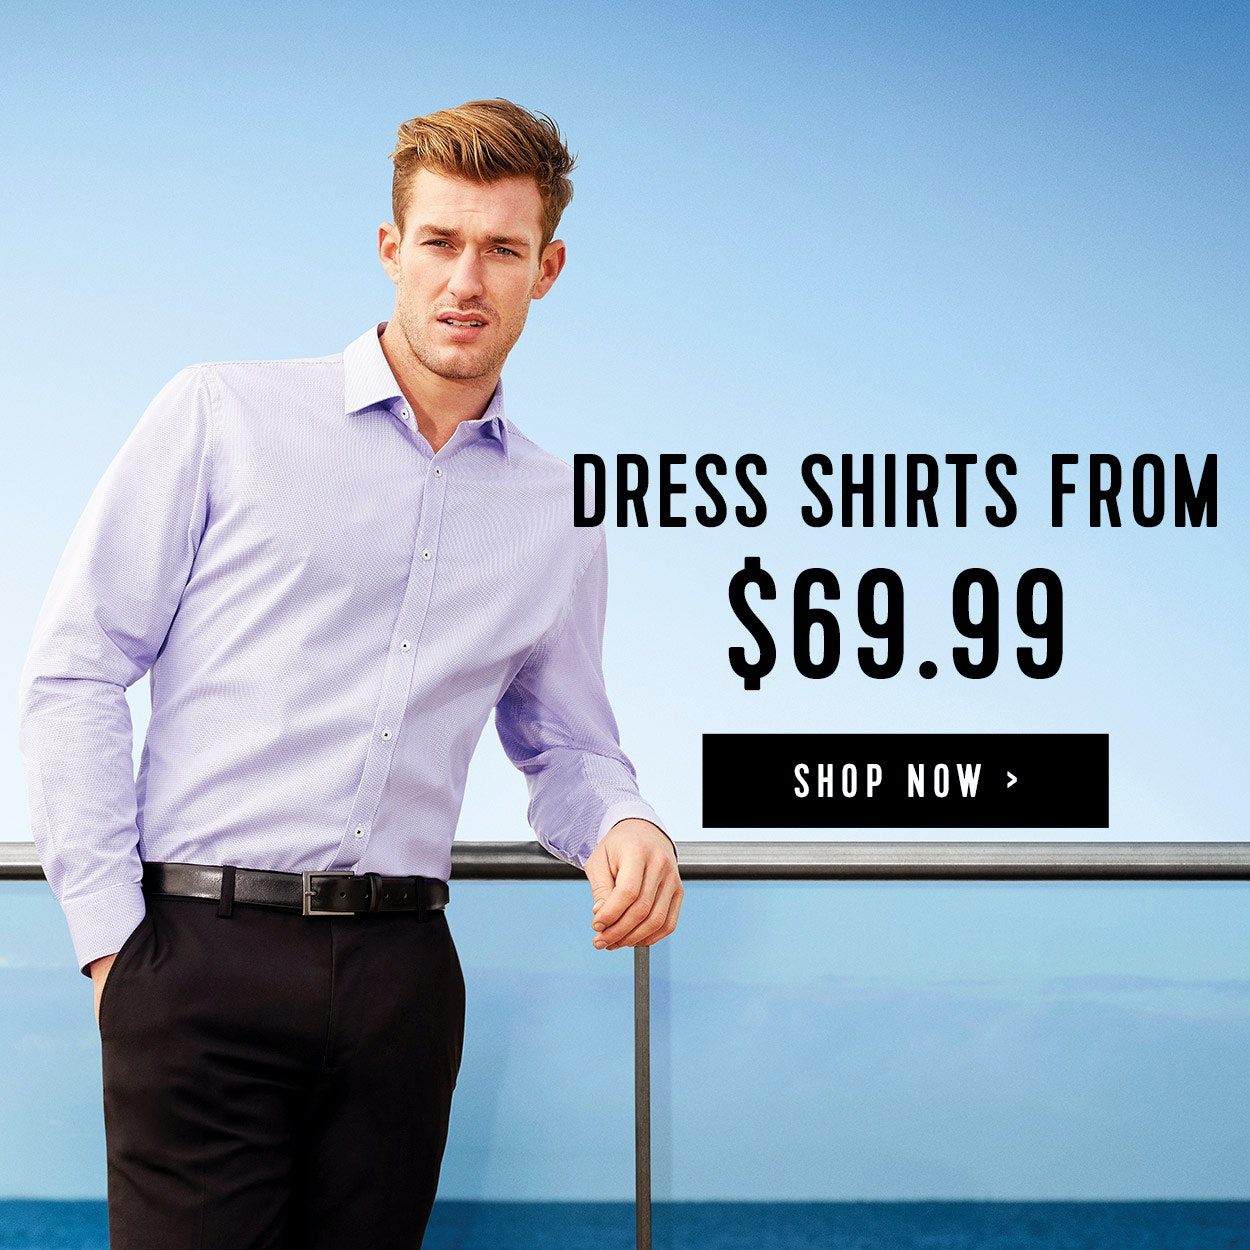 Dress Shirts from $69.99